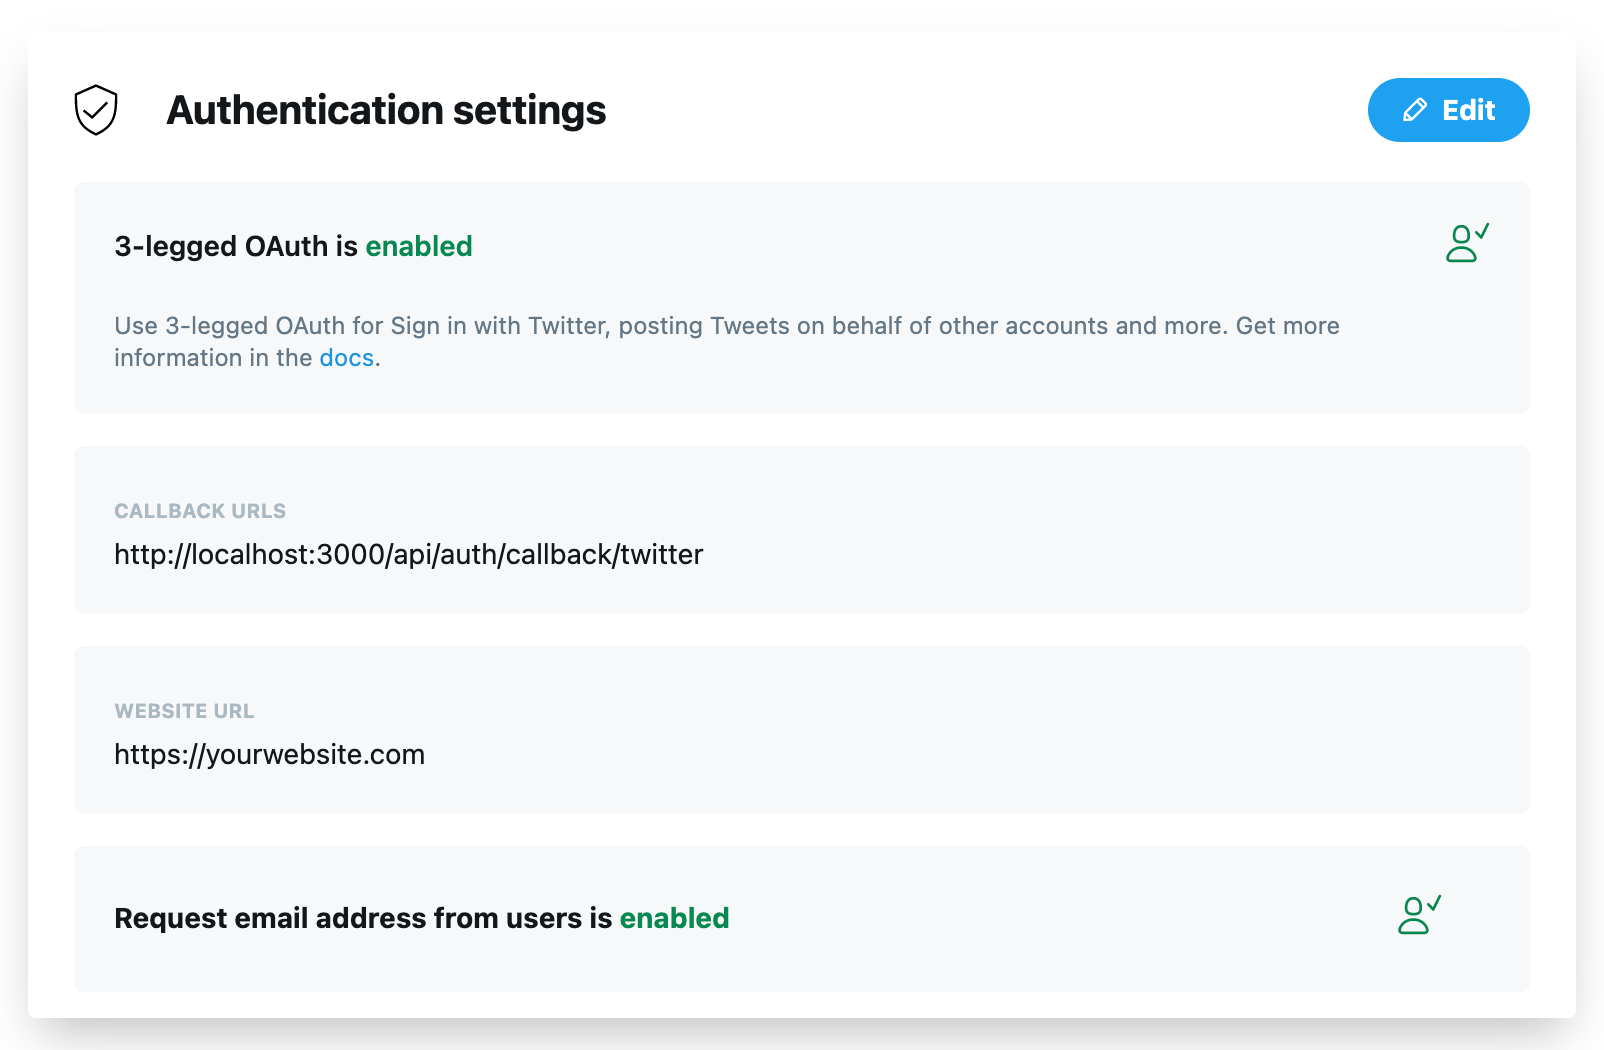 Enable the 3-legged OAuth of our Twitter app